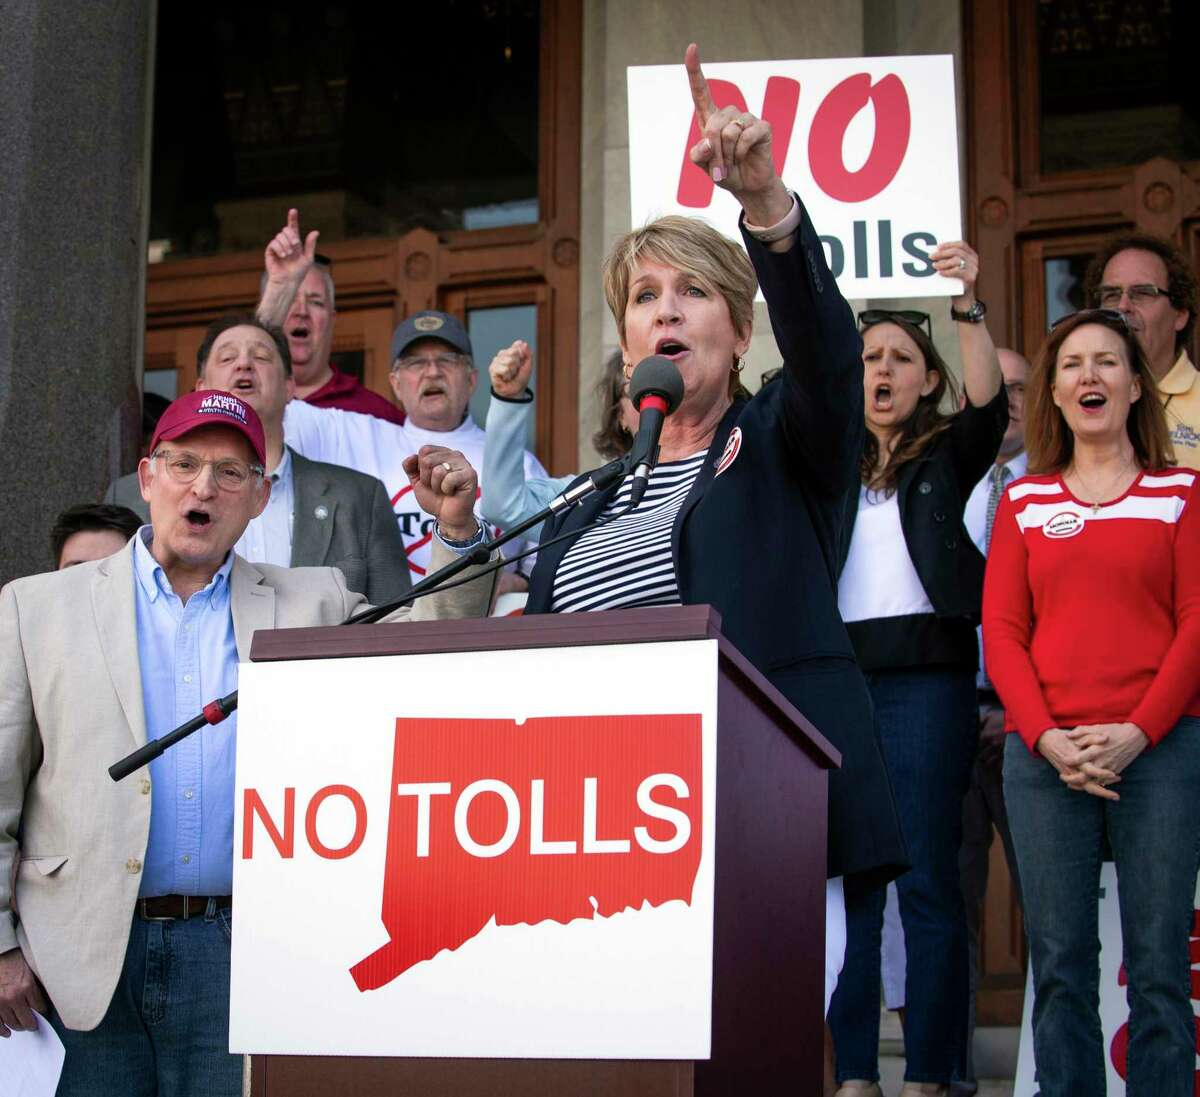 State Rep. Laura Devlin addresses the crowd of anti-toll protesters in front of the Capitol Building, Saturday, May 18, 2019 in Hartford, Conn. Protesters have gathered outside the state Capitol to rally against a proposal to put electronic tolls on the state's highways. Demonstrators on Saturday called the plan another tax increase state residents can't afford. They held